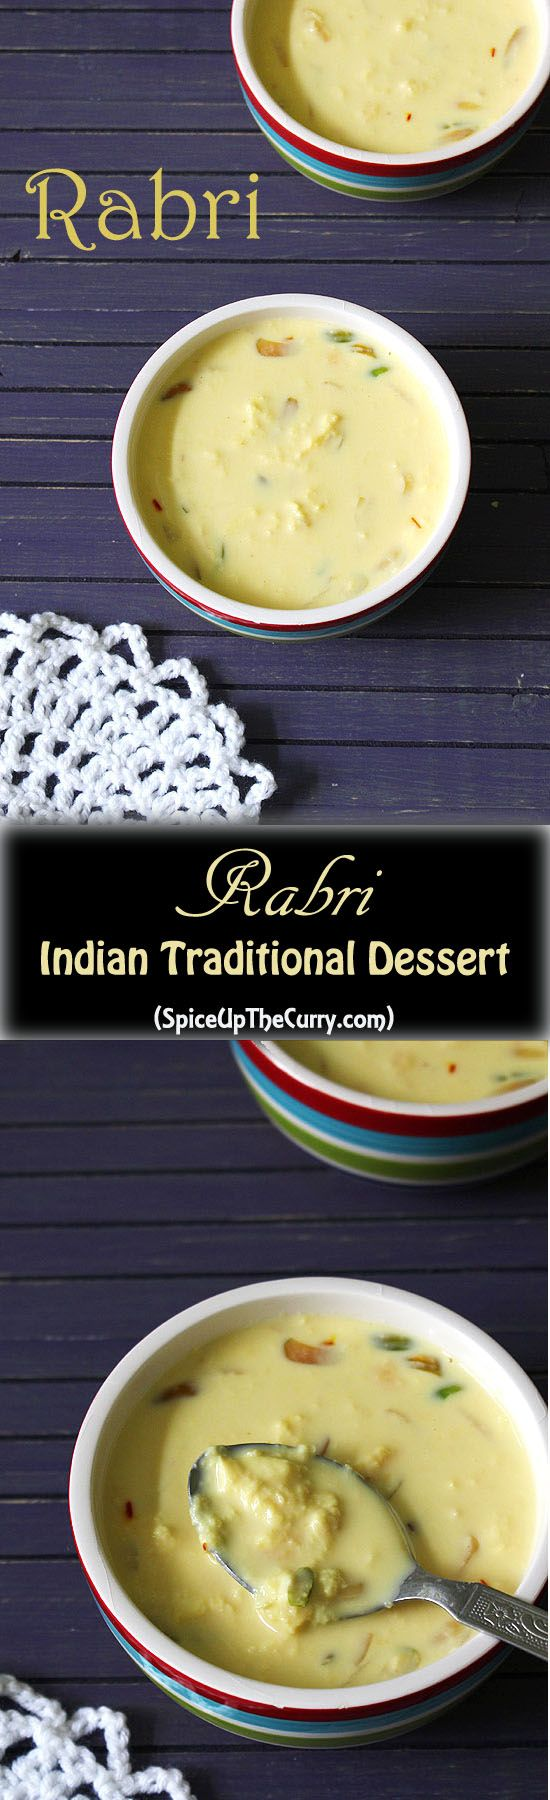 100 indian dessert recipes on pinterest indian sweets for Recipes with minimal ingredients